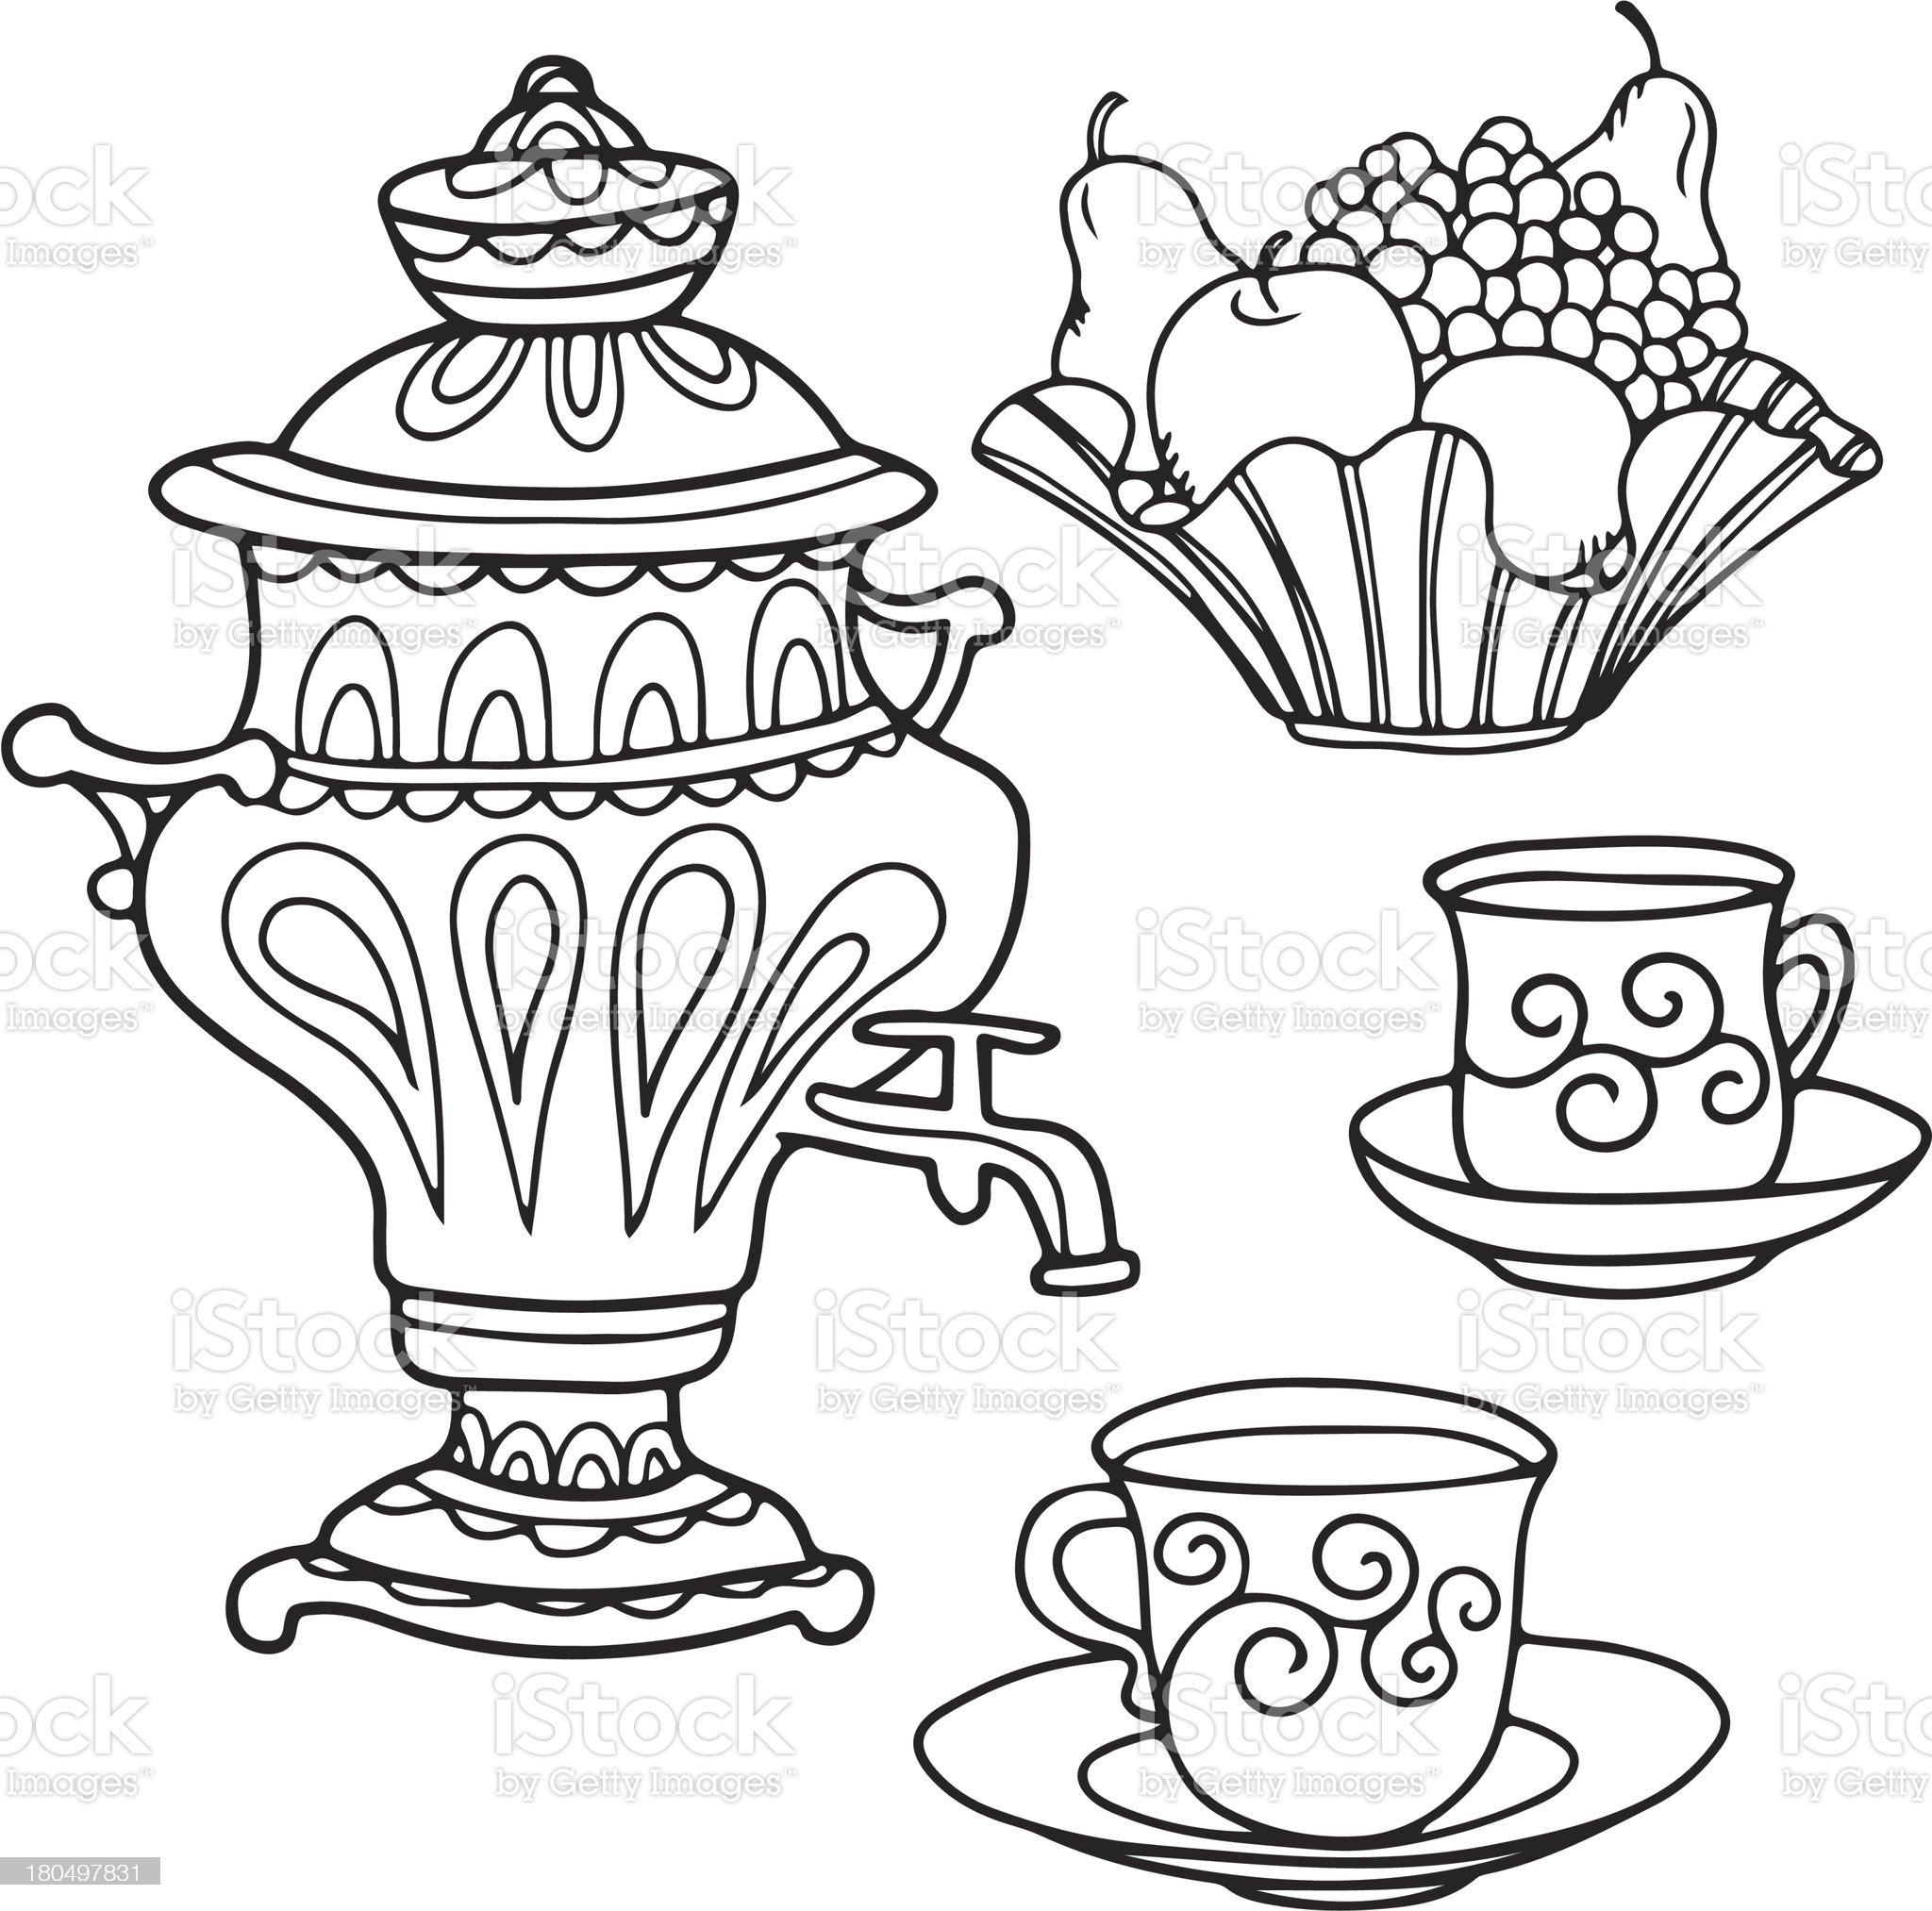 Set icons russian samovar, bowl of fruit and tea cups royalty-free stock vector art